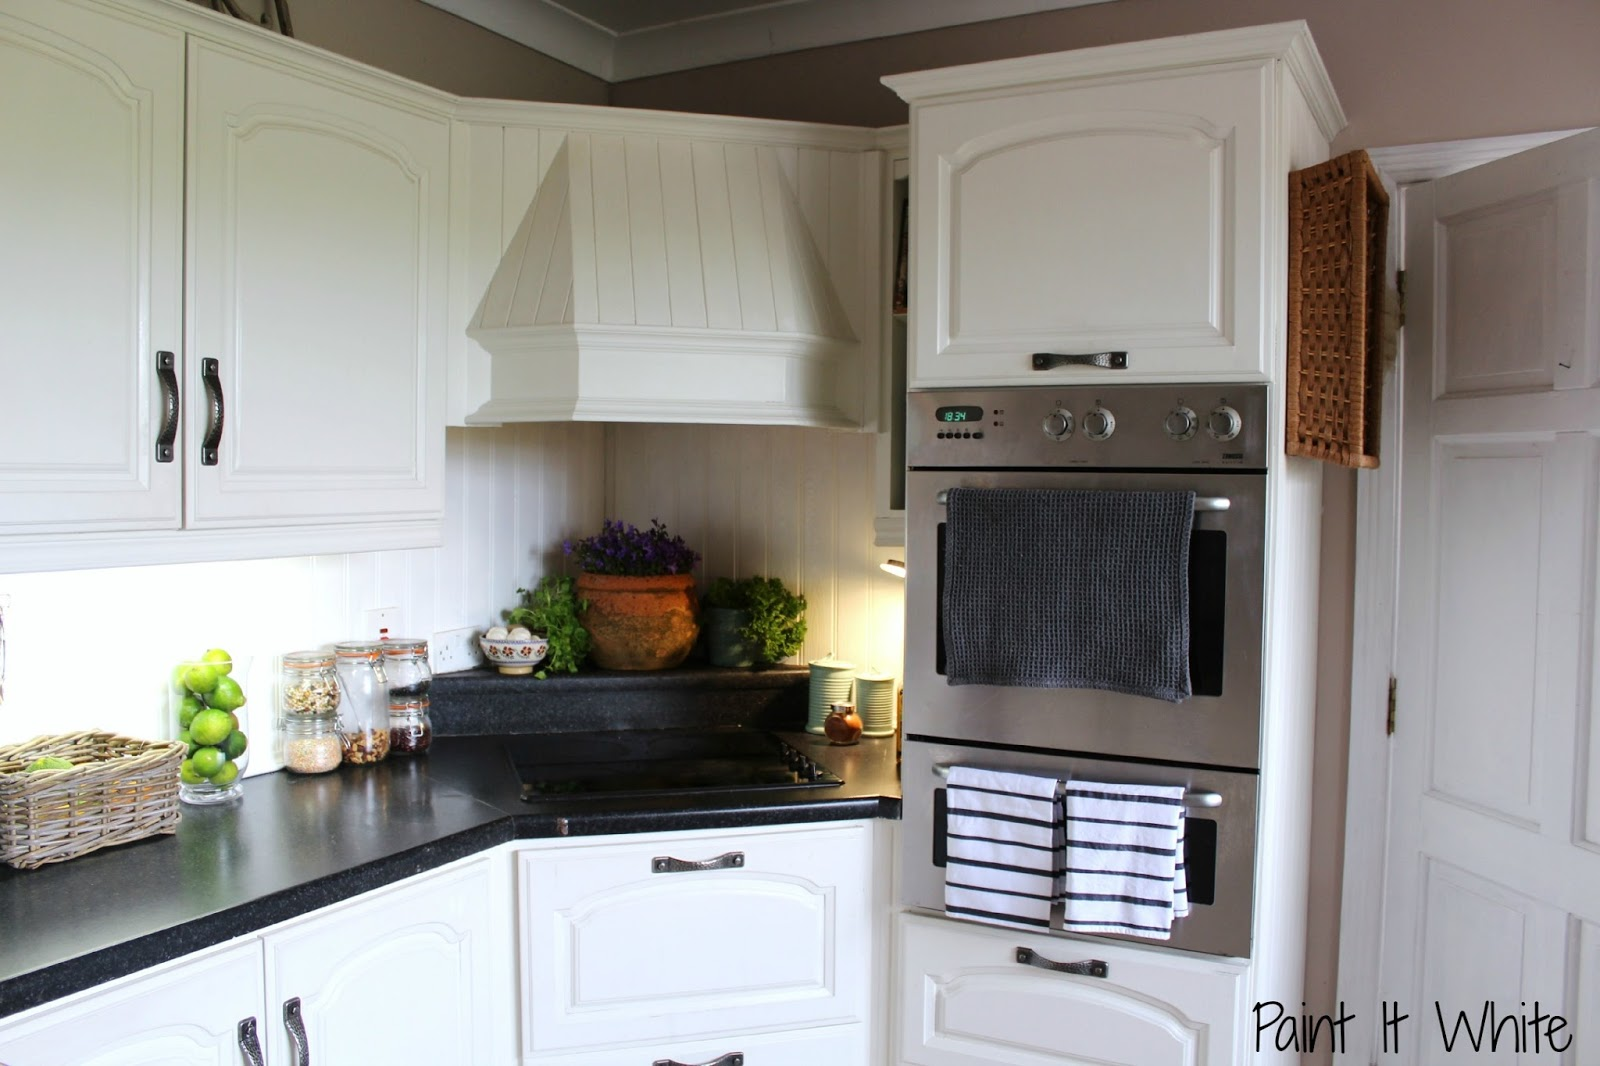 Delightful 14 Annie Sloan Chalk Paint In Old White Wood Kitchen Cabinet Update, Rustic  Accents For Amazing Design